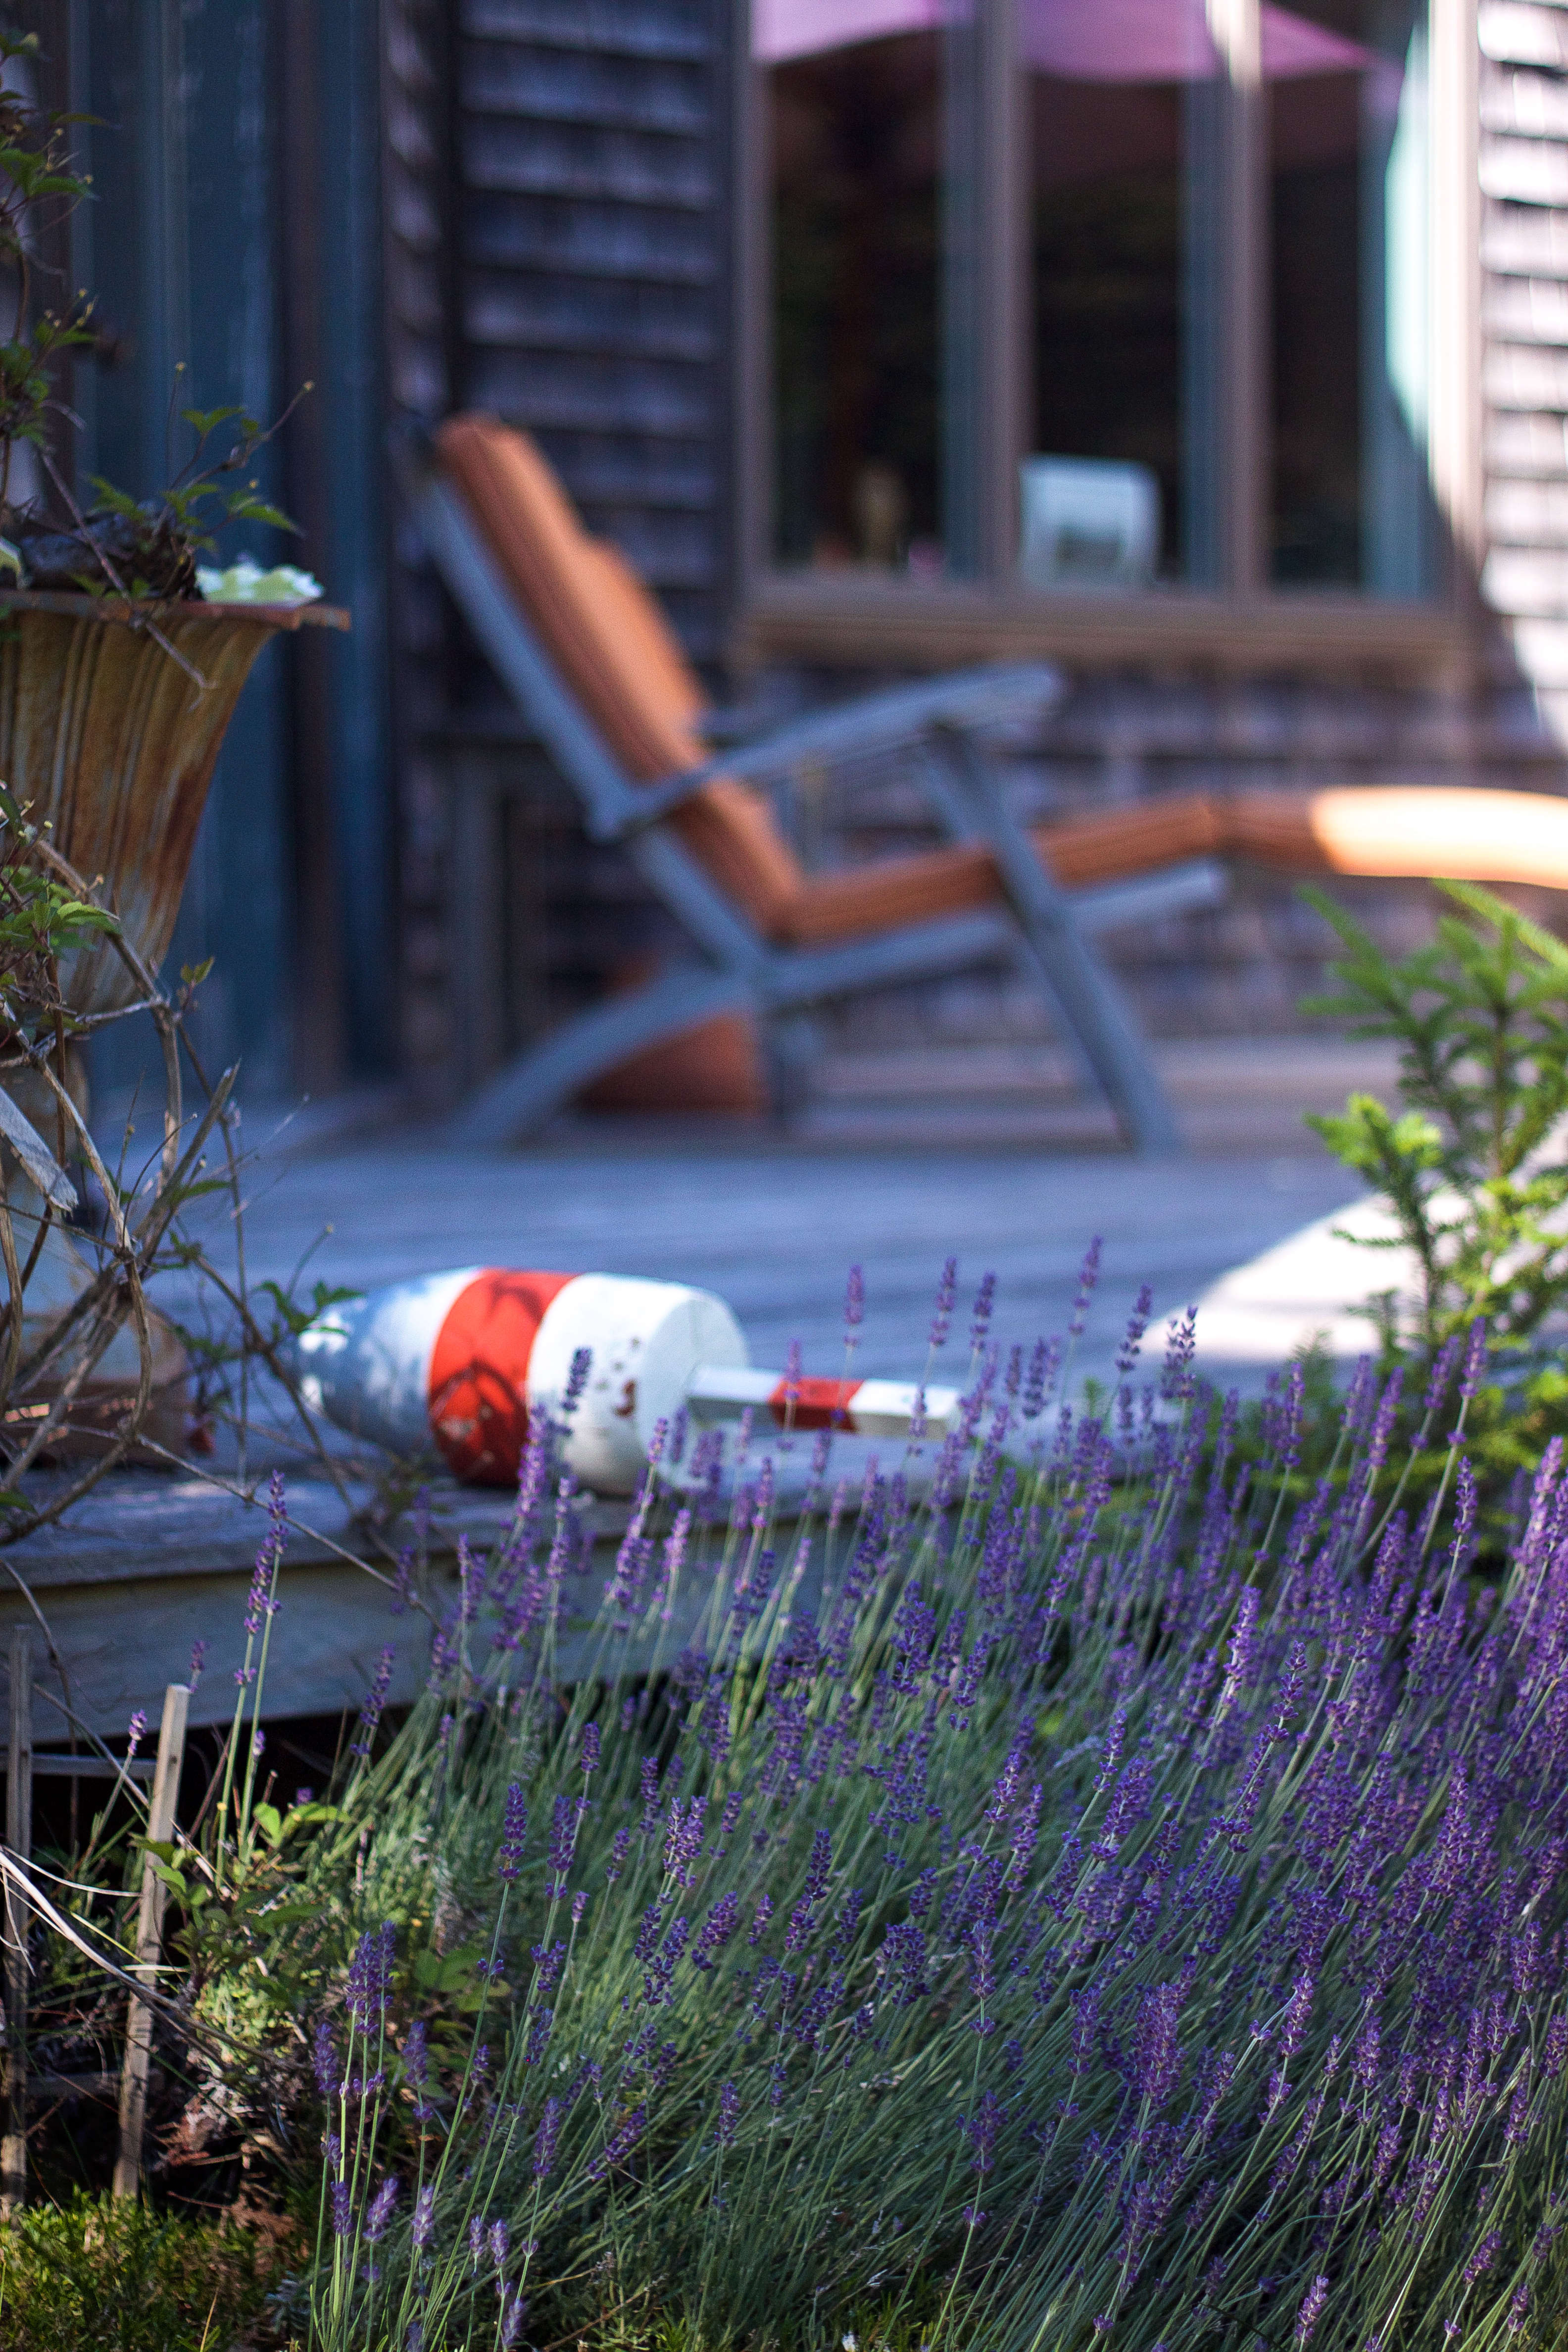 Cape Cod meets Mediterranean &#8\2\1\1; a lobster buoy found washed ashore rests on a deck bordered by a long lavender bed.